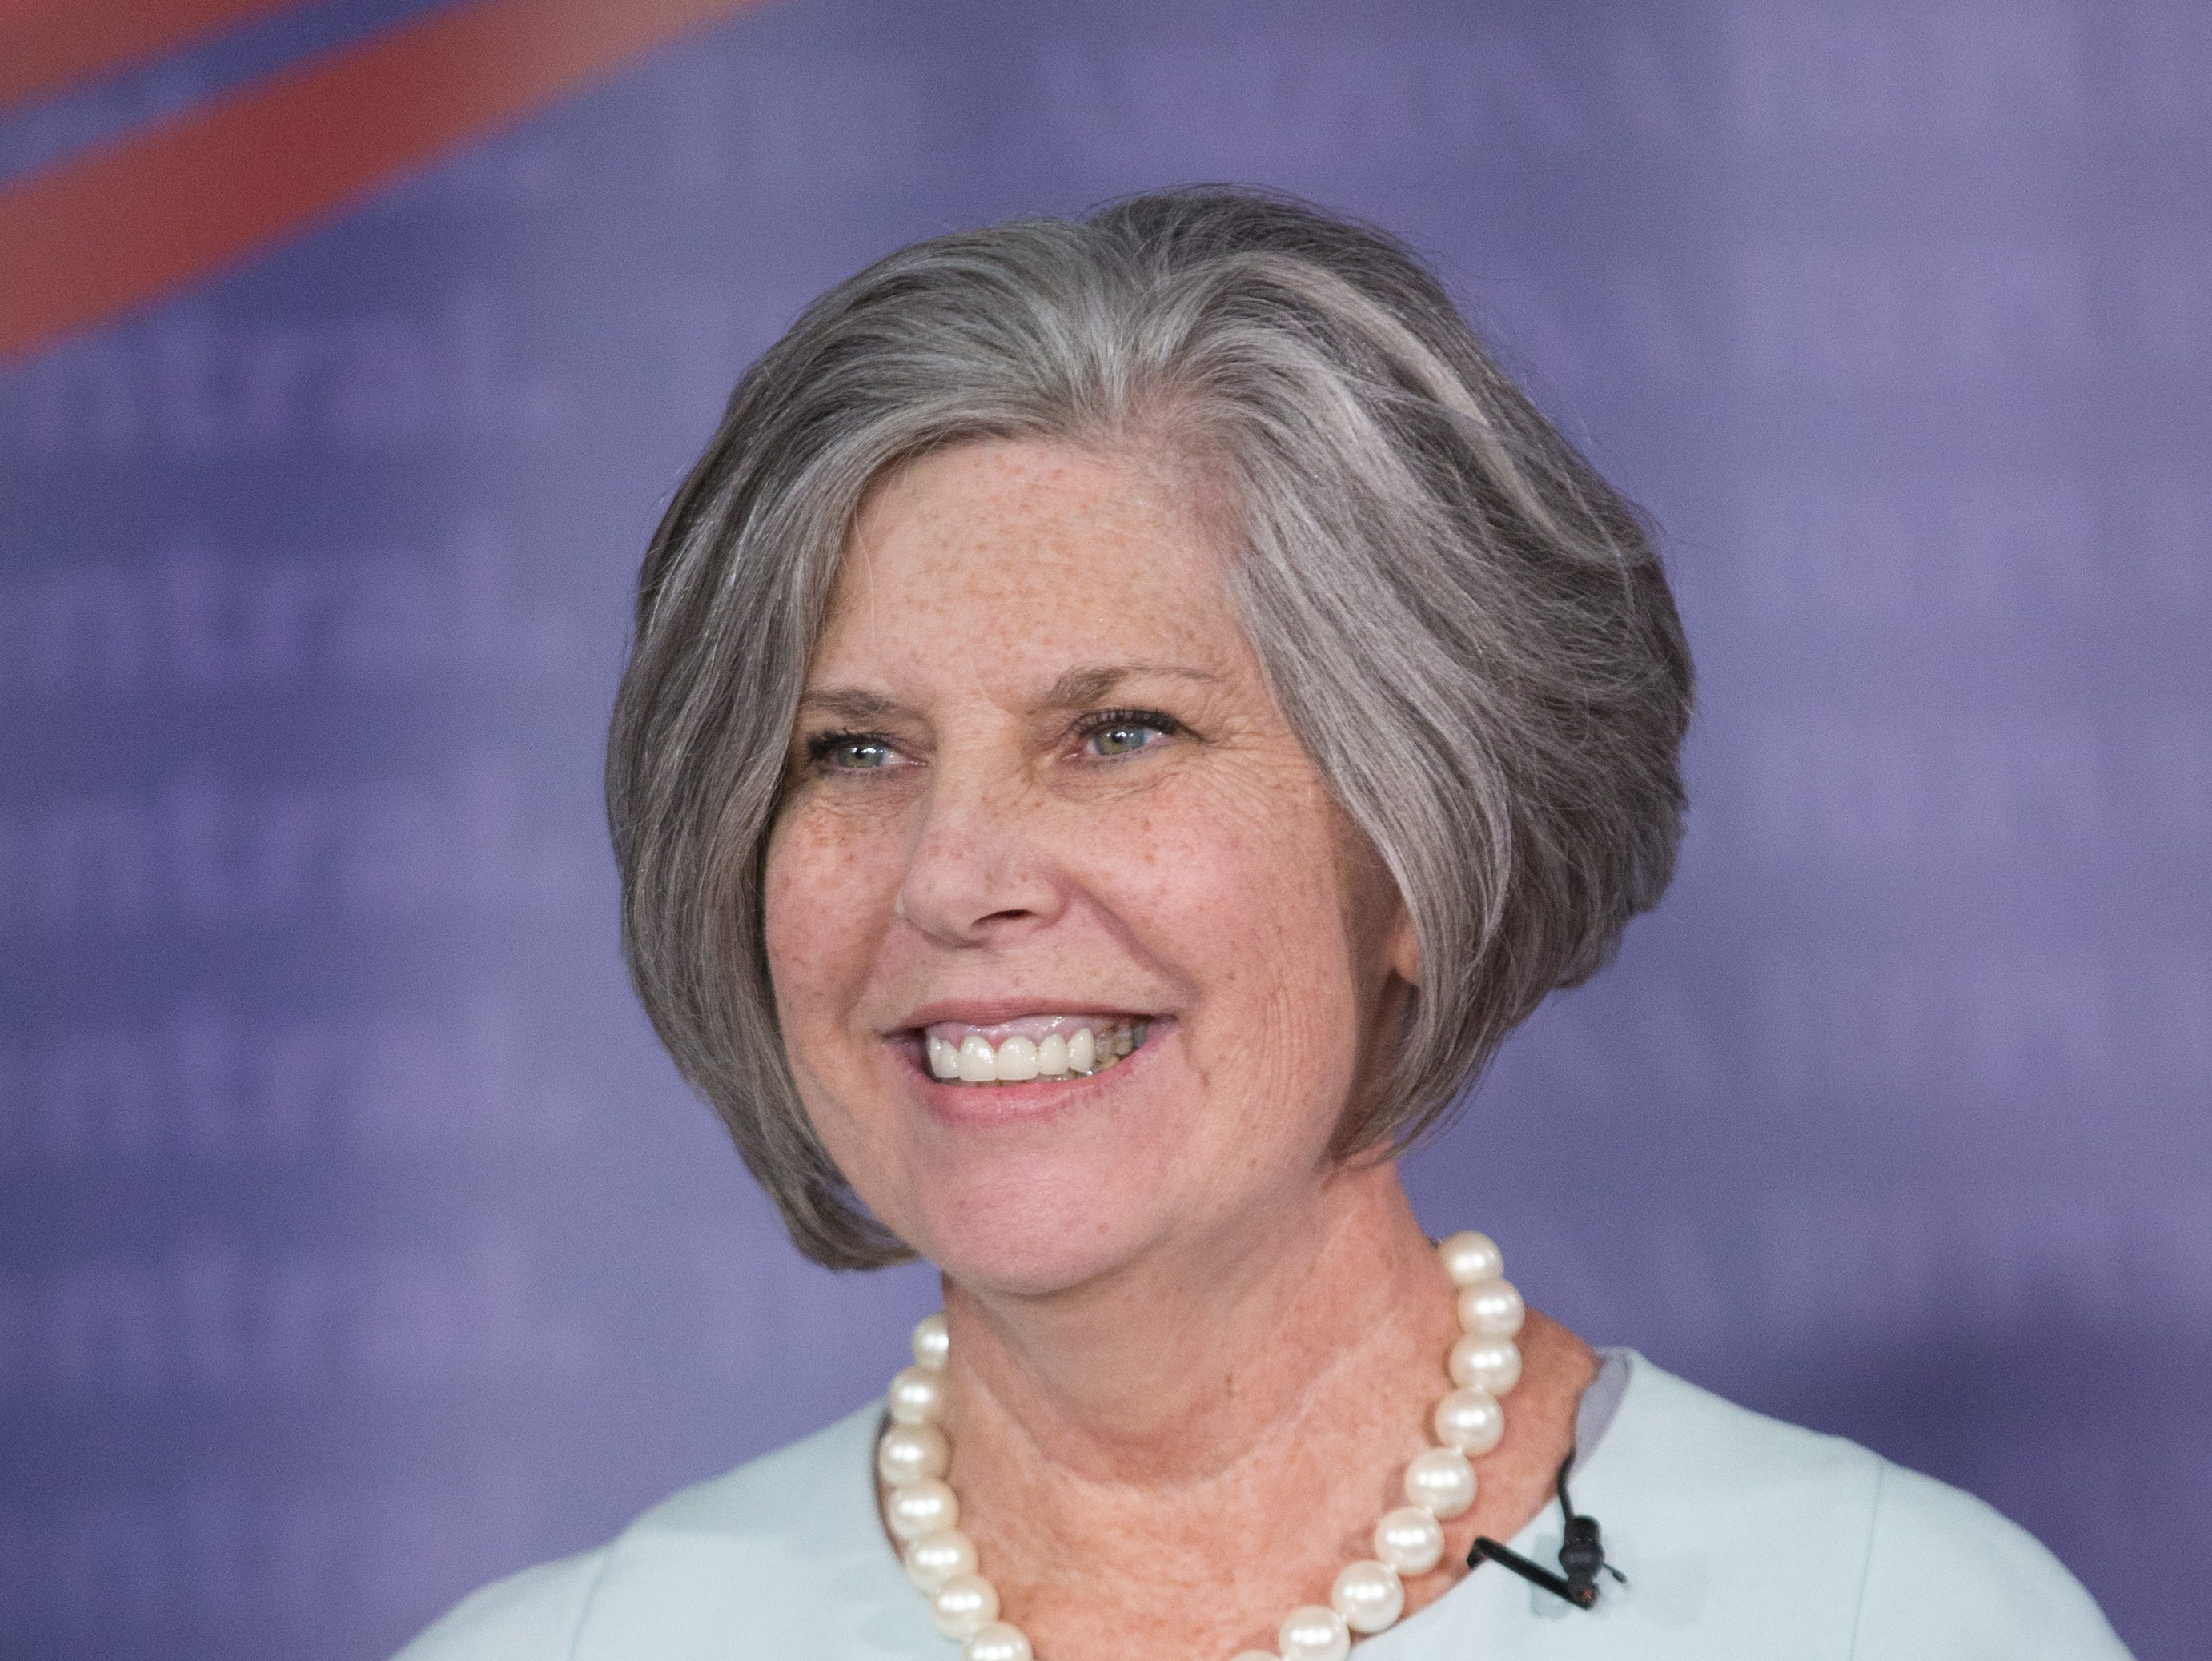 Tracy Livingston, candidate for state superintendent of public instruction, speaks during a debate at The Arizona Republic on August 1, 2018.